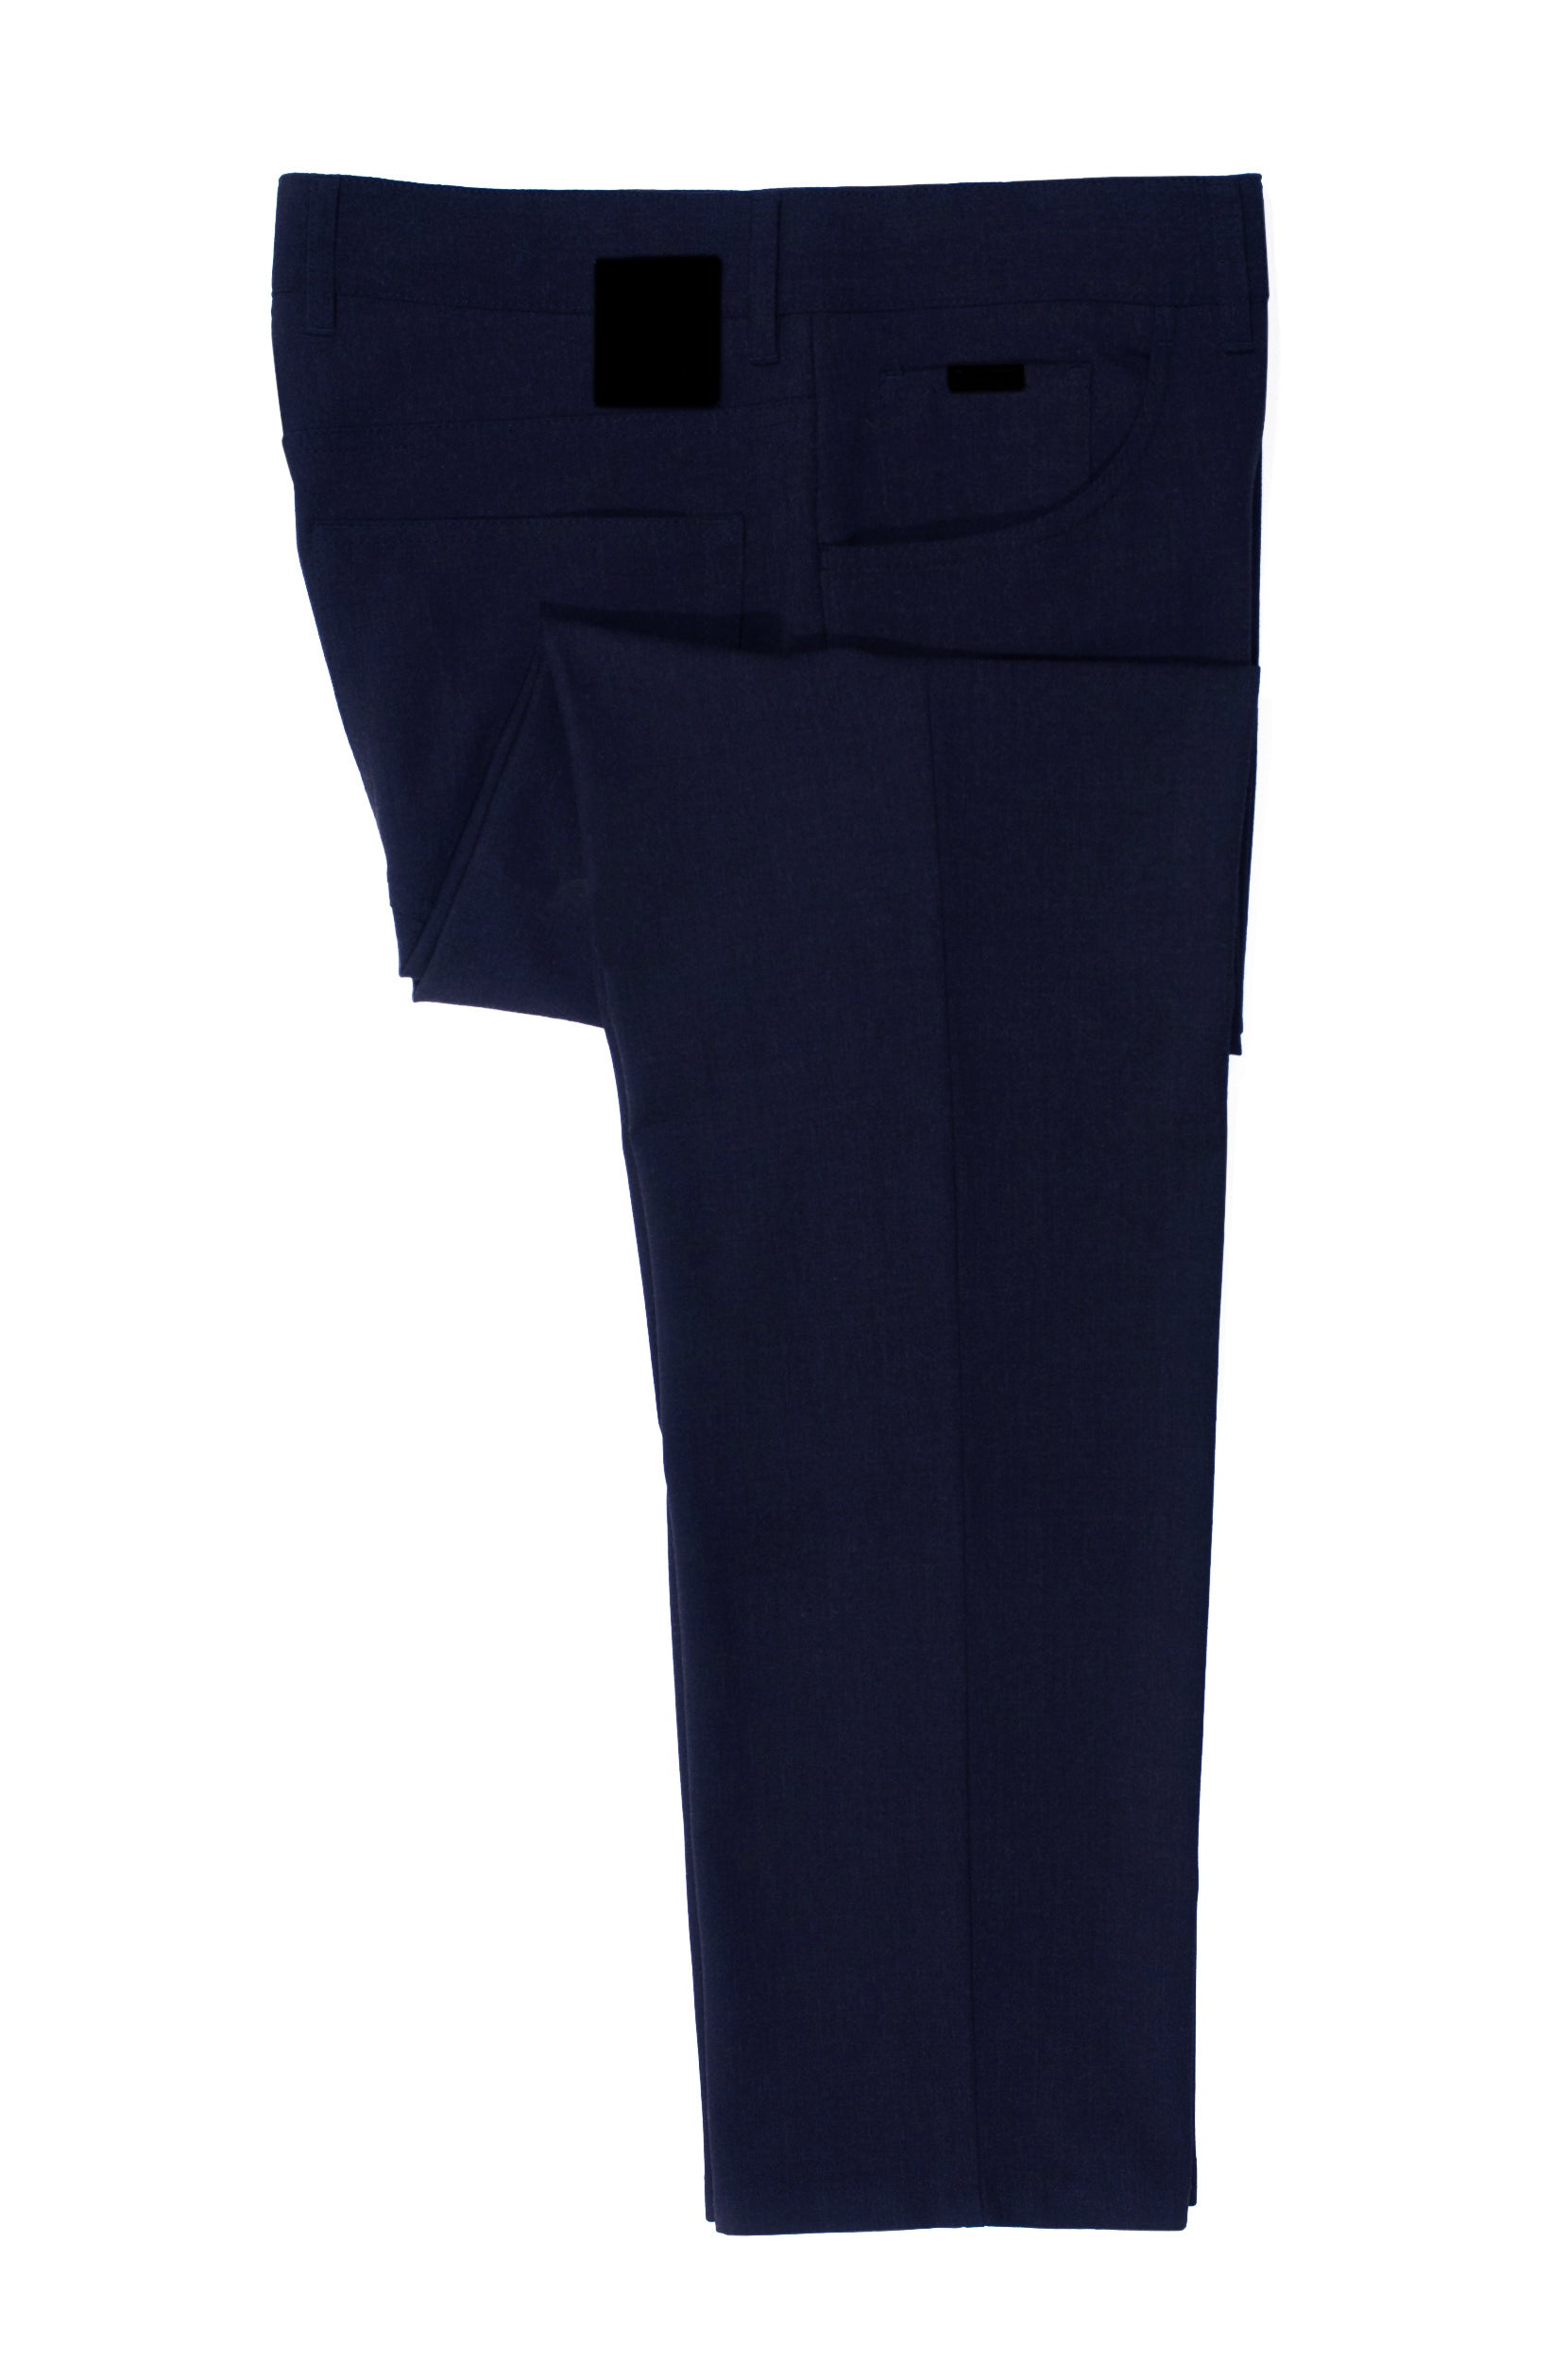 Alberto Dark Navy Tom Ceramica Comfort Fit Pants for Luxmrkt.com Menswear Consignment Edmonton